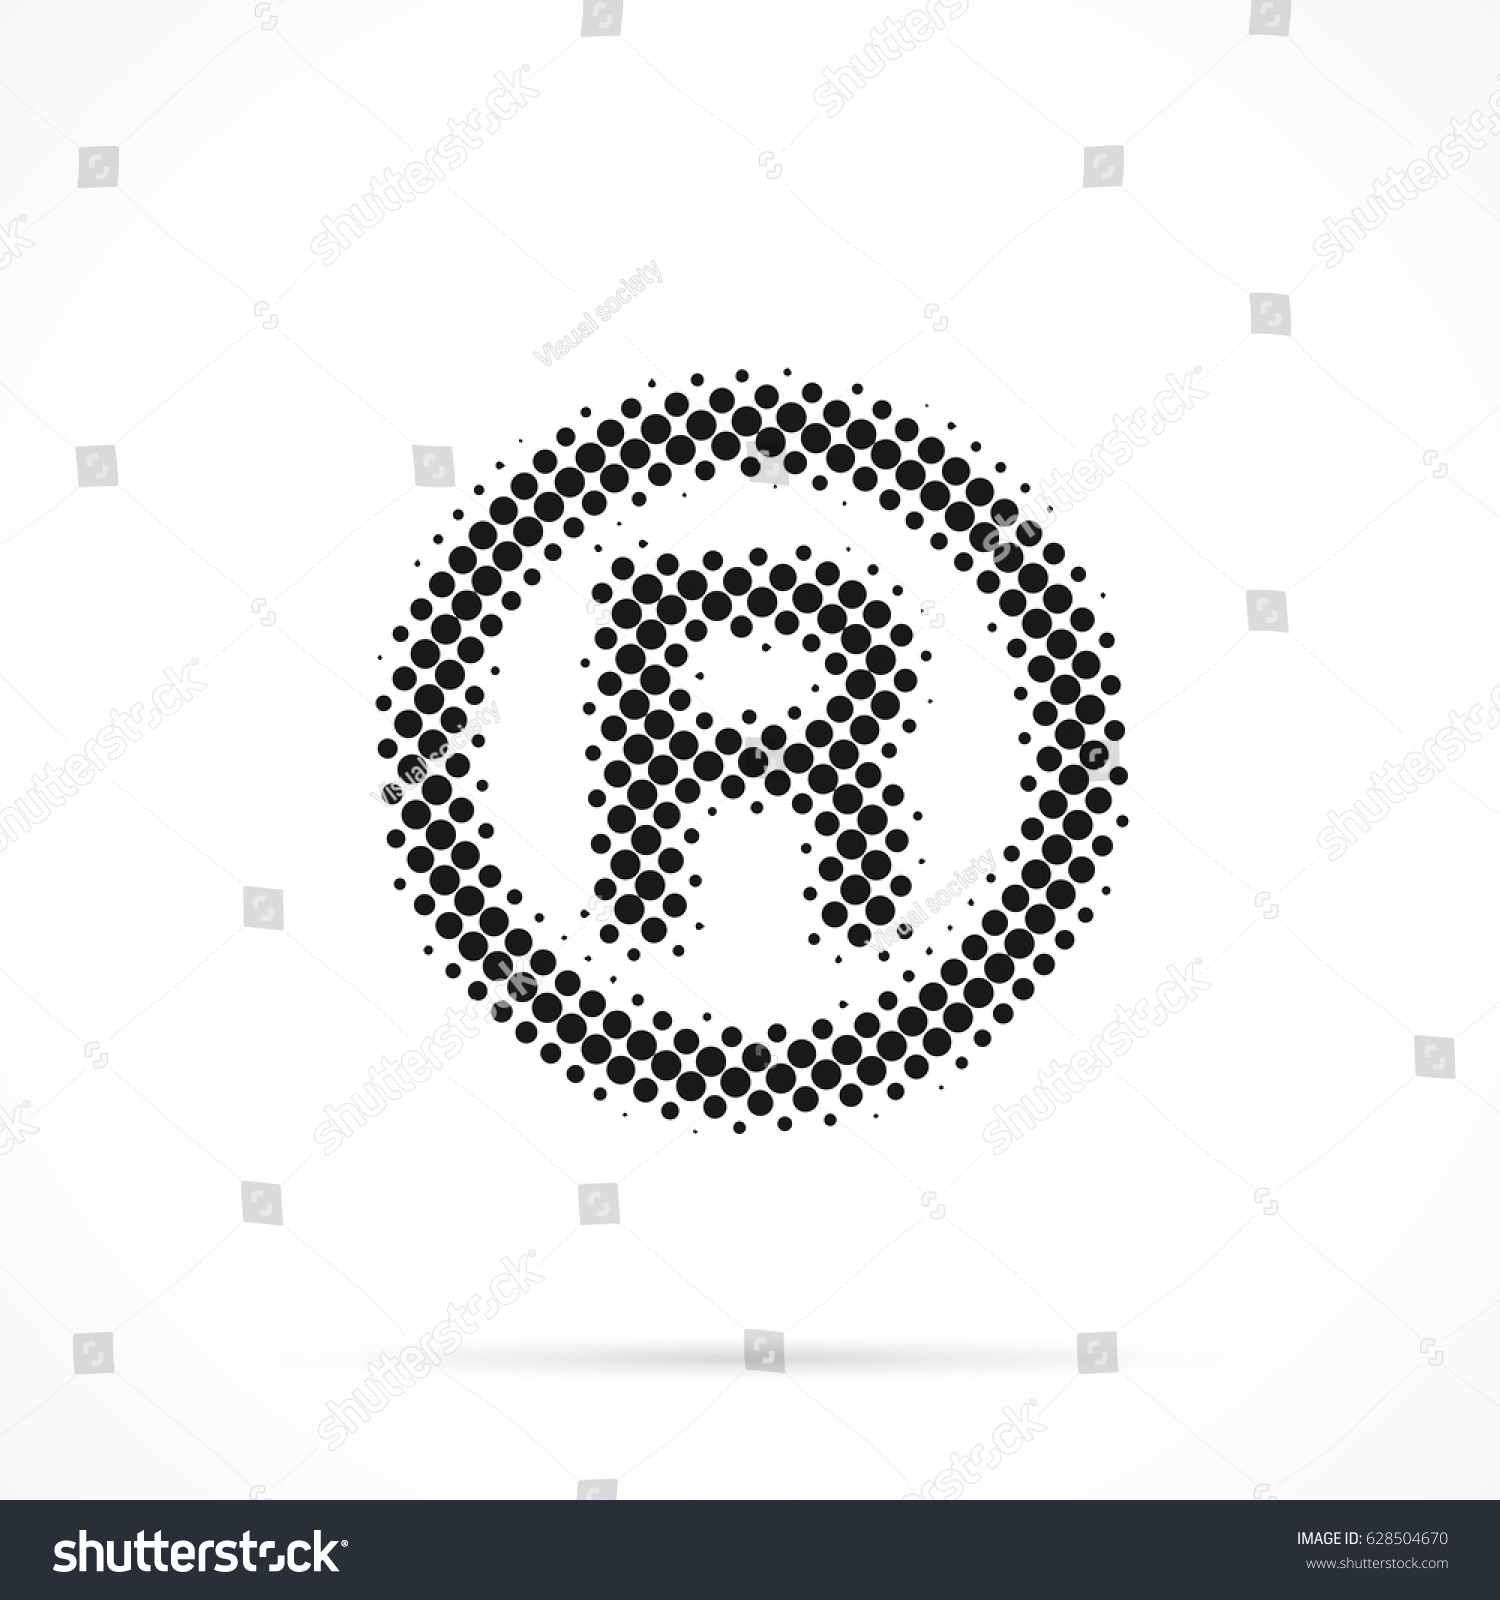 R Registered Trademark Symbol Halftone Dotted Stock Vector Royalty